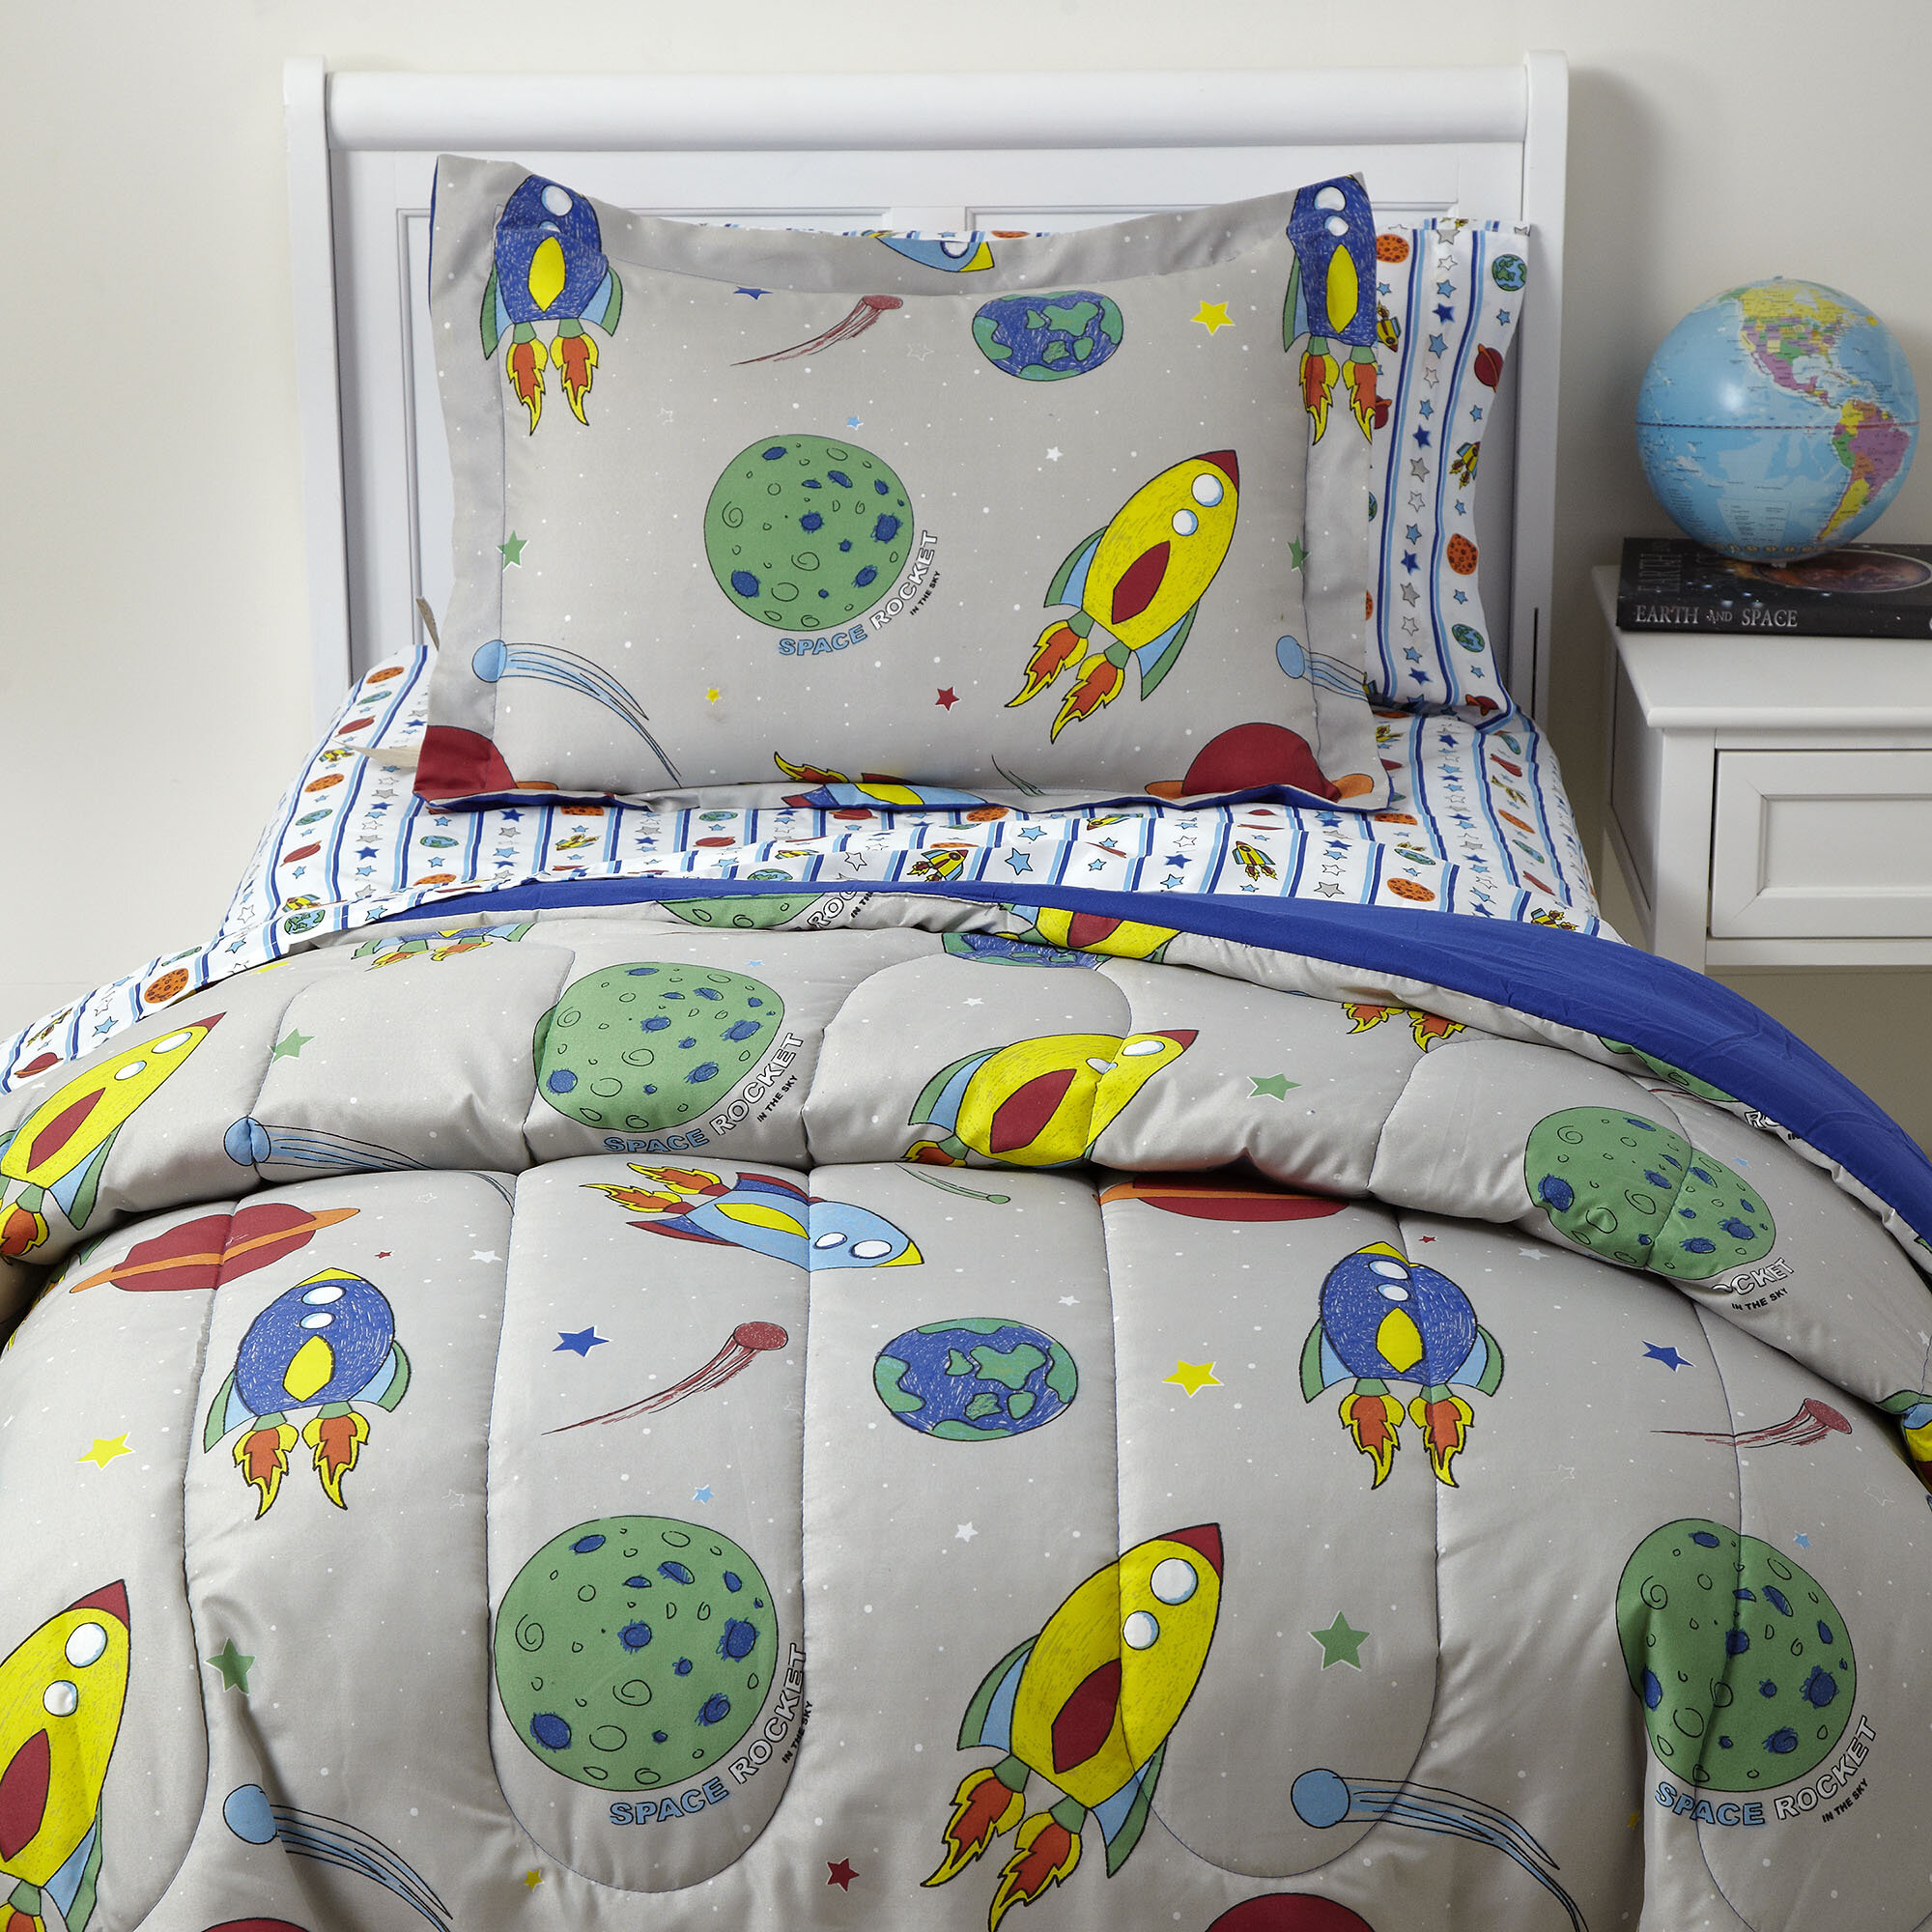 king babies sets sheets angeloferrer xl twin canada walmart com bedding bed size for